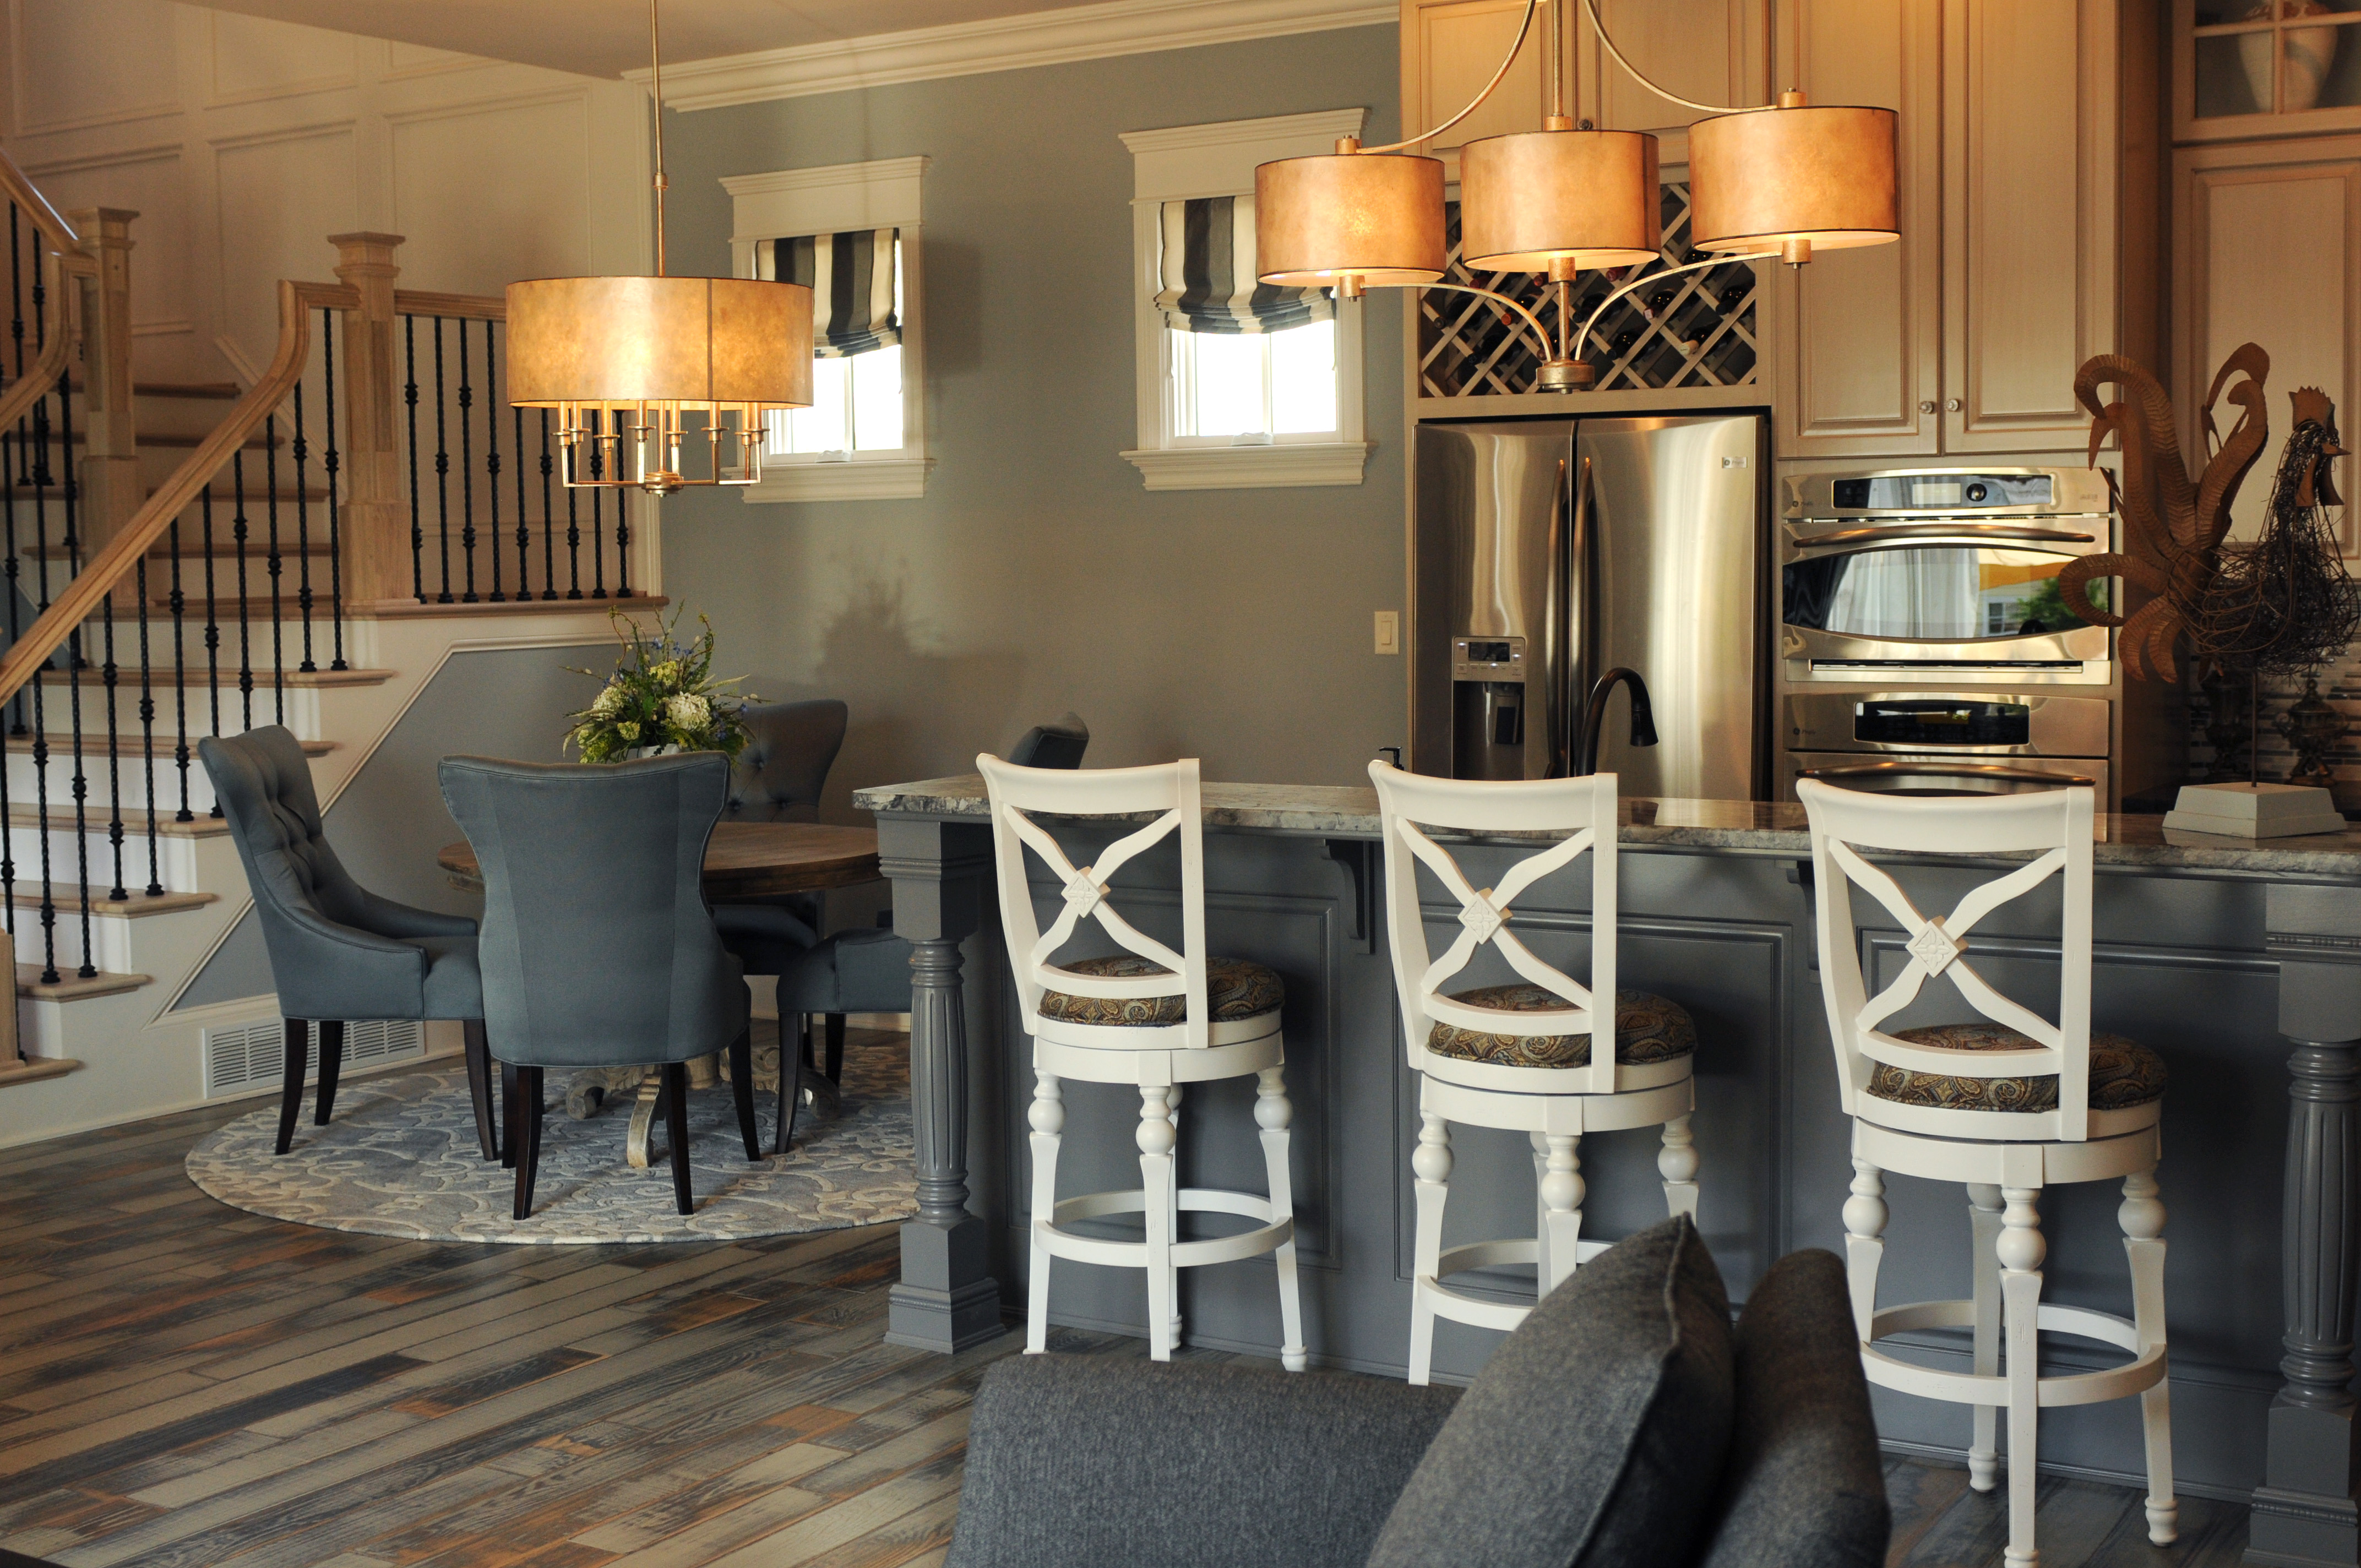 Hearth room and kitchen llds home store design studio for House plans with hearth rooms